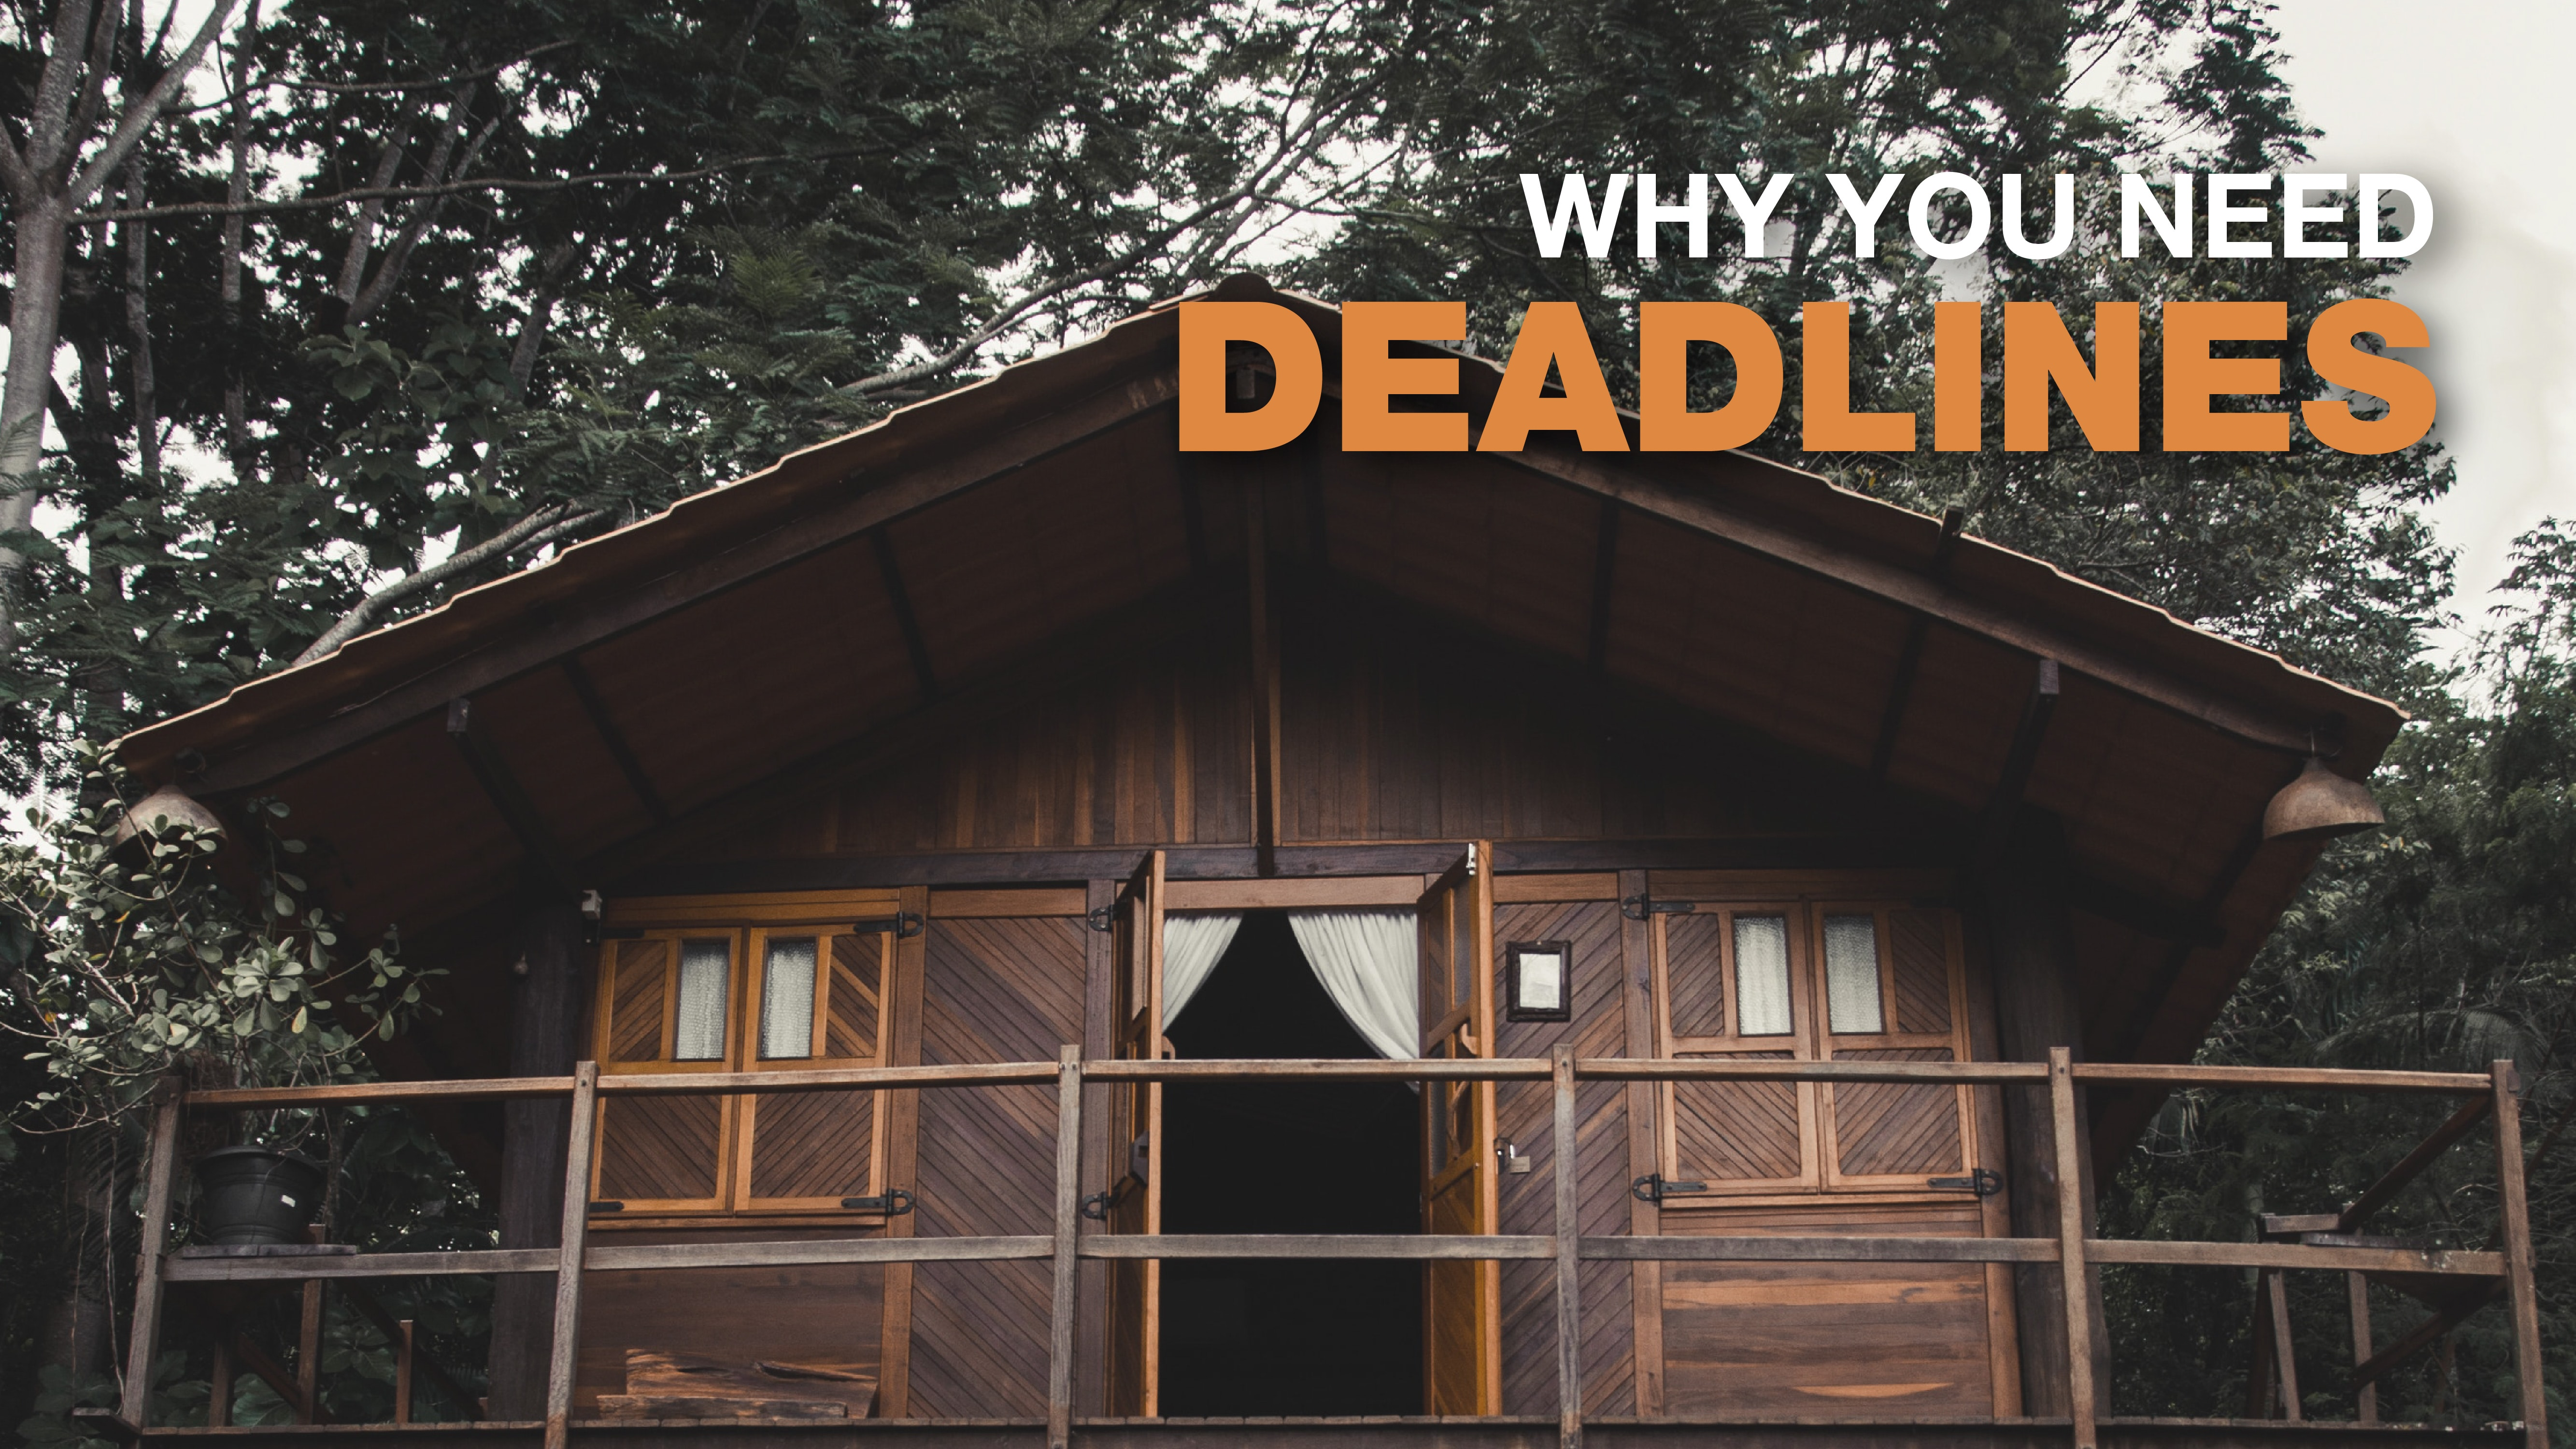 Why you need deadlines